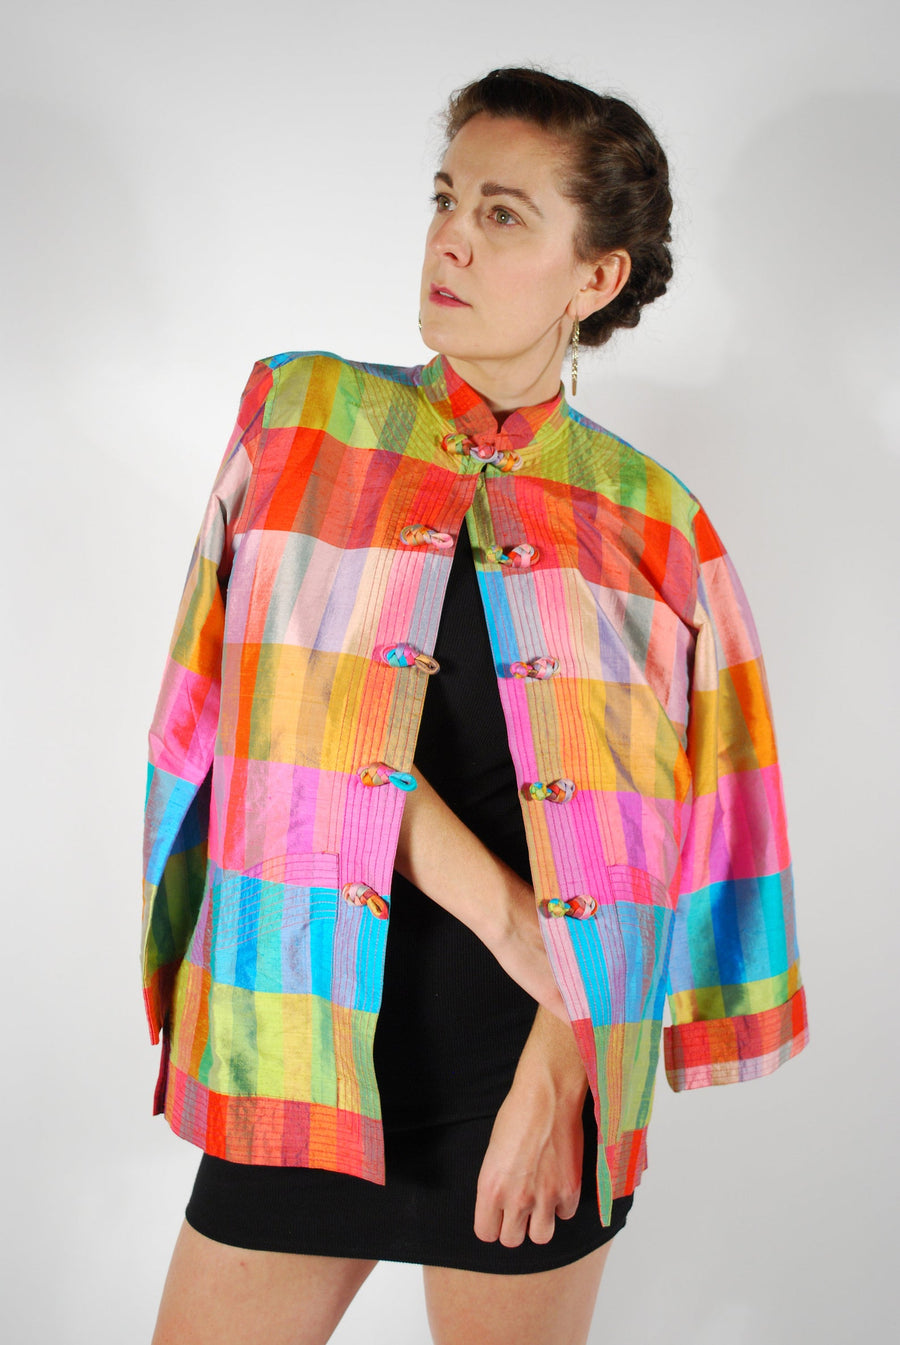 Rainbow Blazer Jacket - Thai Silk Jacket - Size M